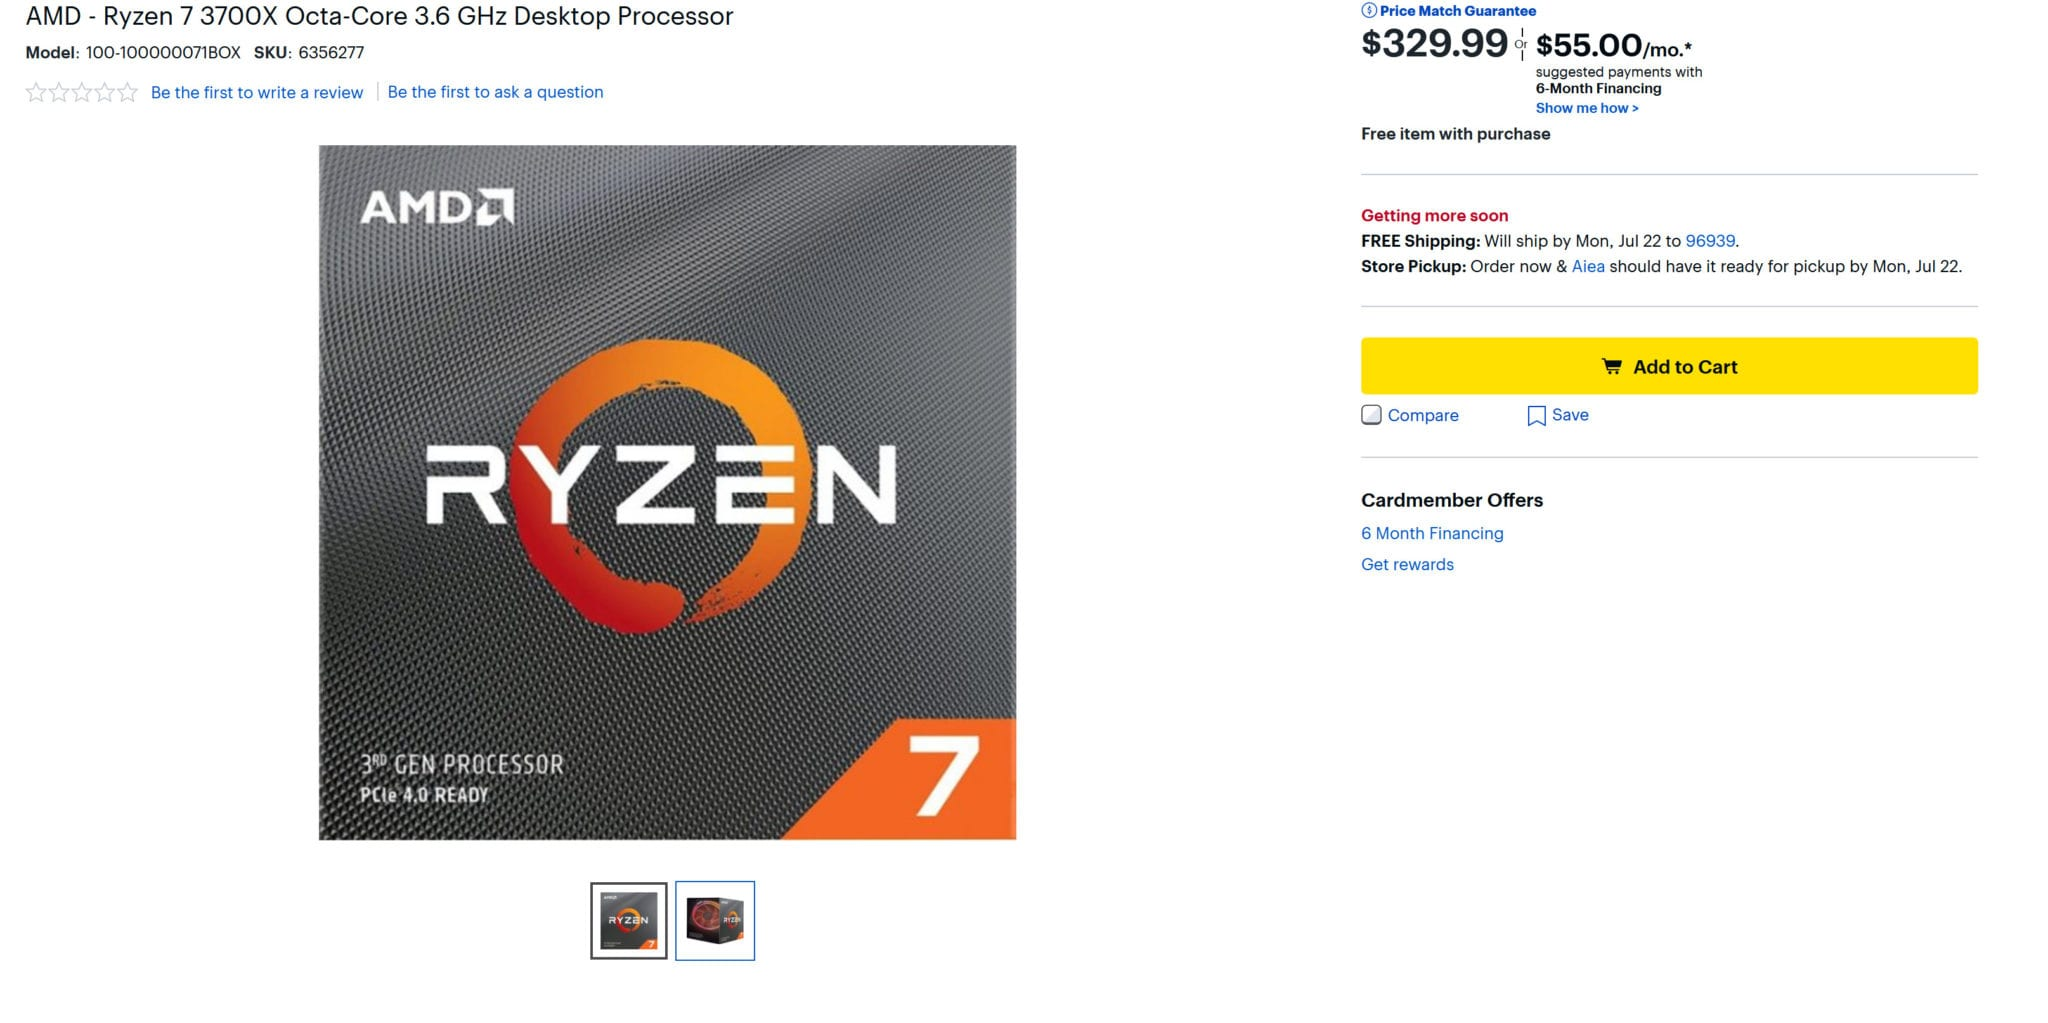 Amd Ryzen 7 3700x 3800x Overpriced At Amazon 150 More Than The Msrp Techquila